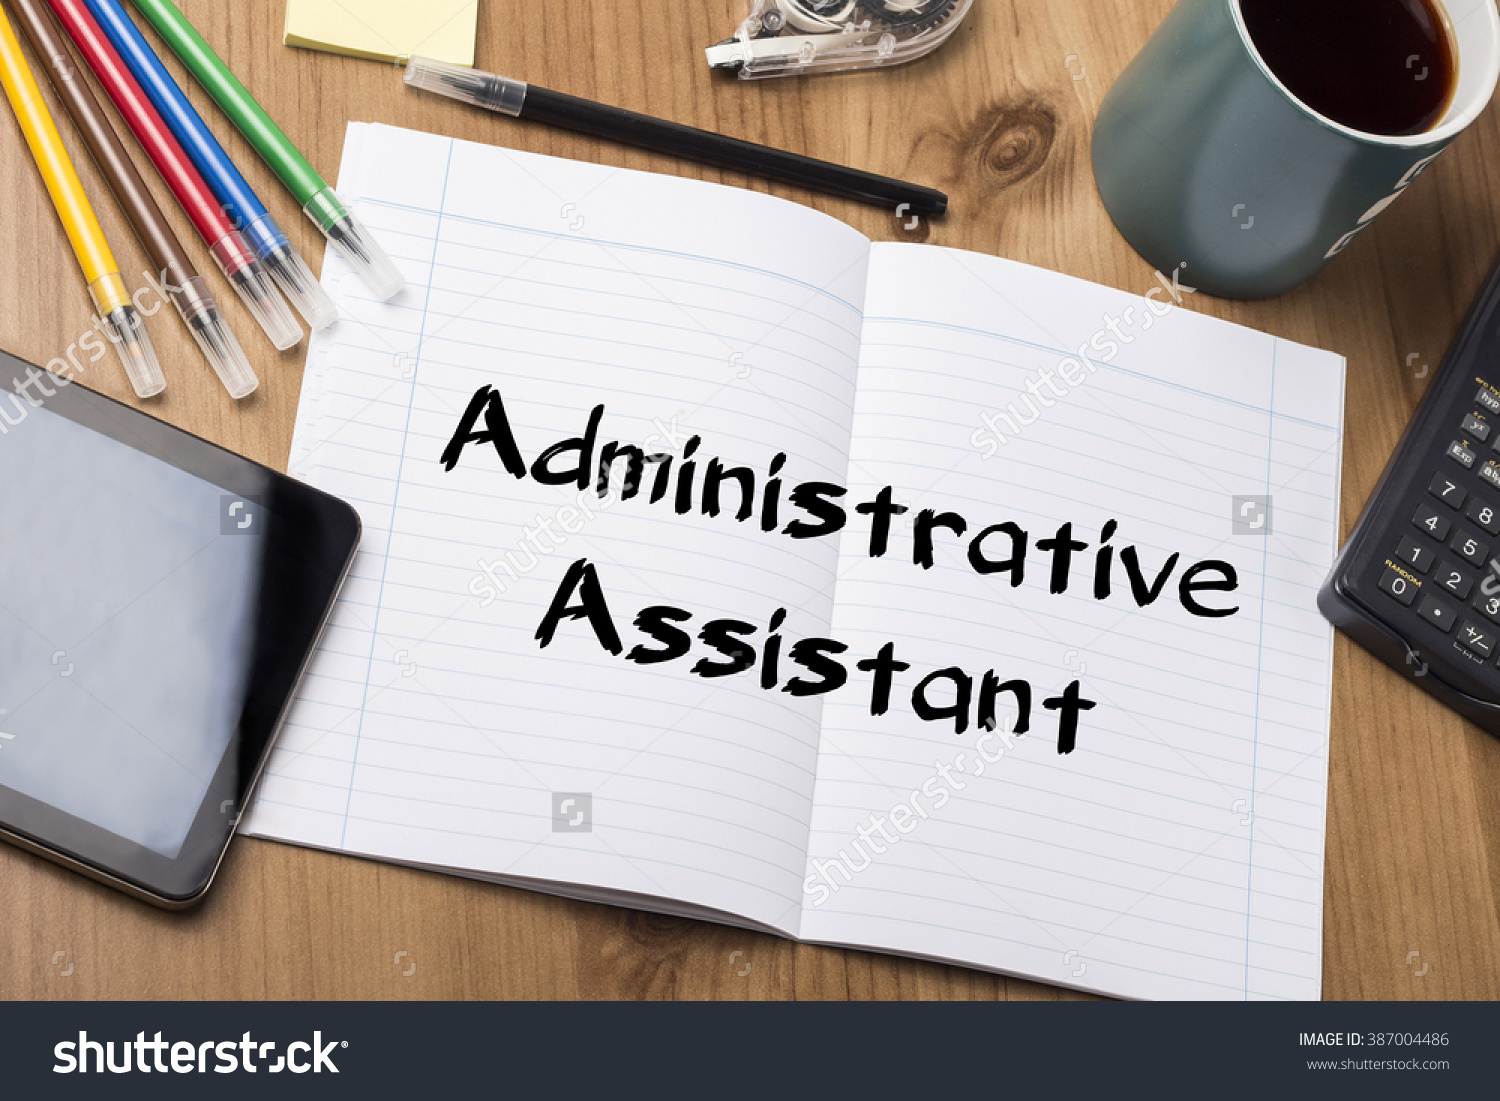 Administrative Assistant colleges that start with z